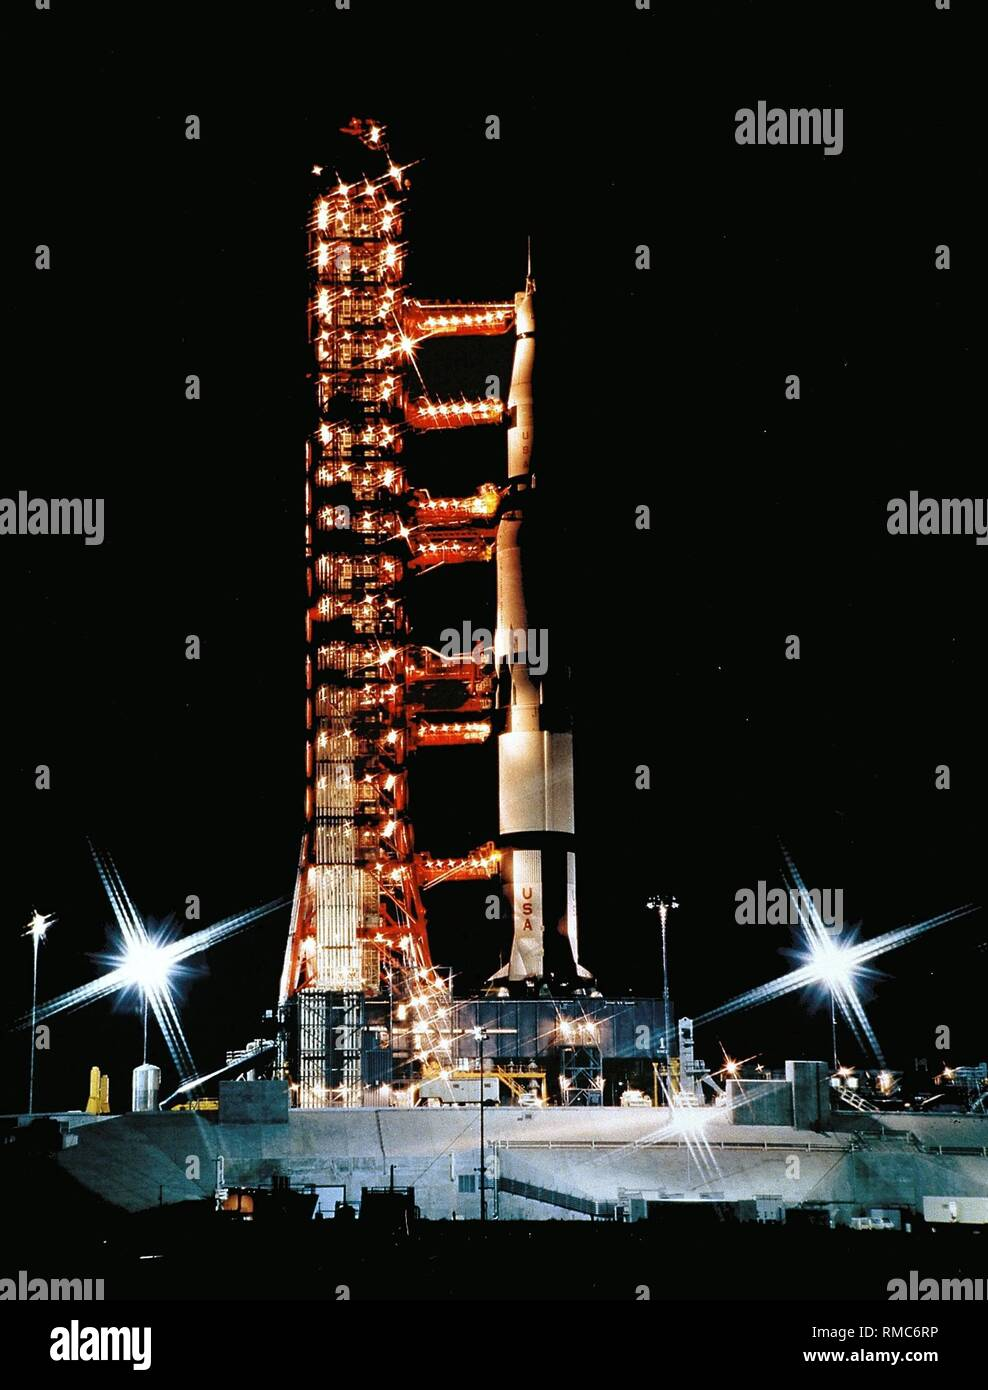 Evening preparations for launching an Apollo program at the Kennedy Space Center. The propulsion rocket of the Apollo program, the Saturn V, and the spacecraft are brought into position at the launch pad. Undated photo, probably from the 1980s. - Stock Image